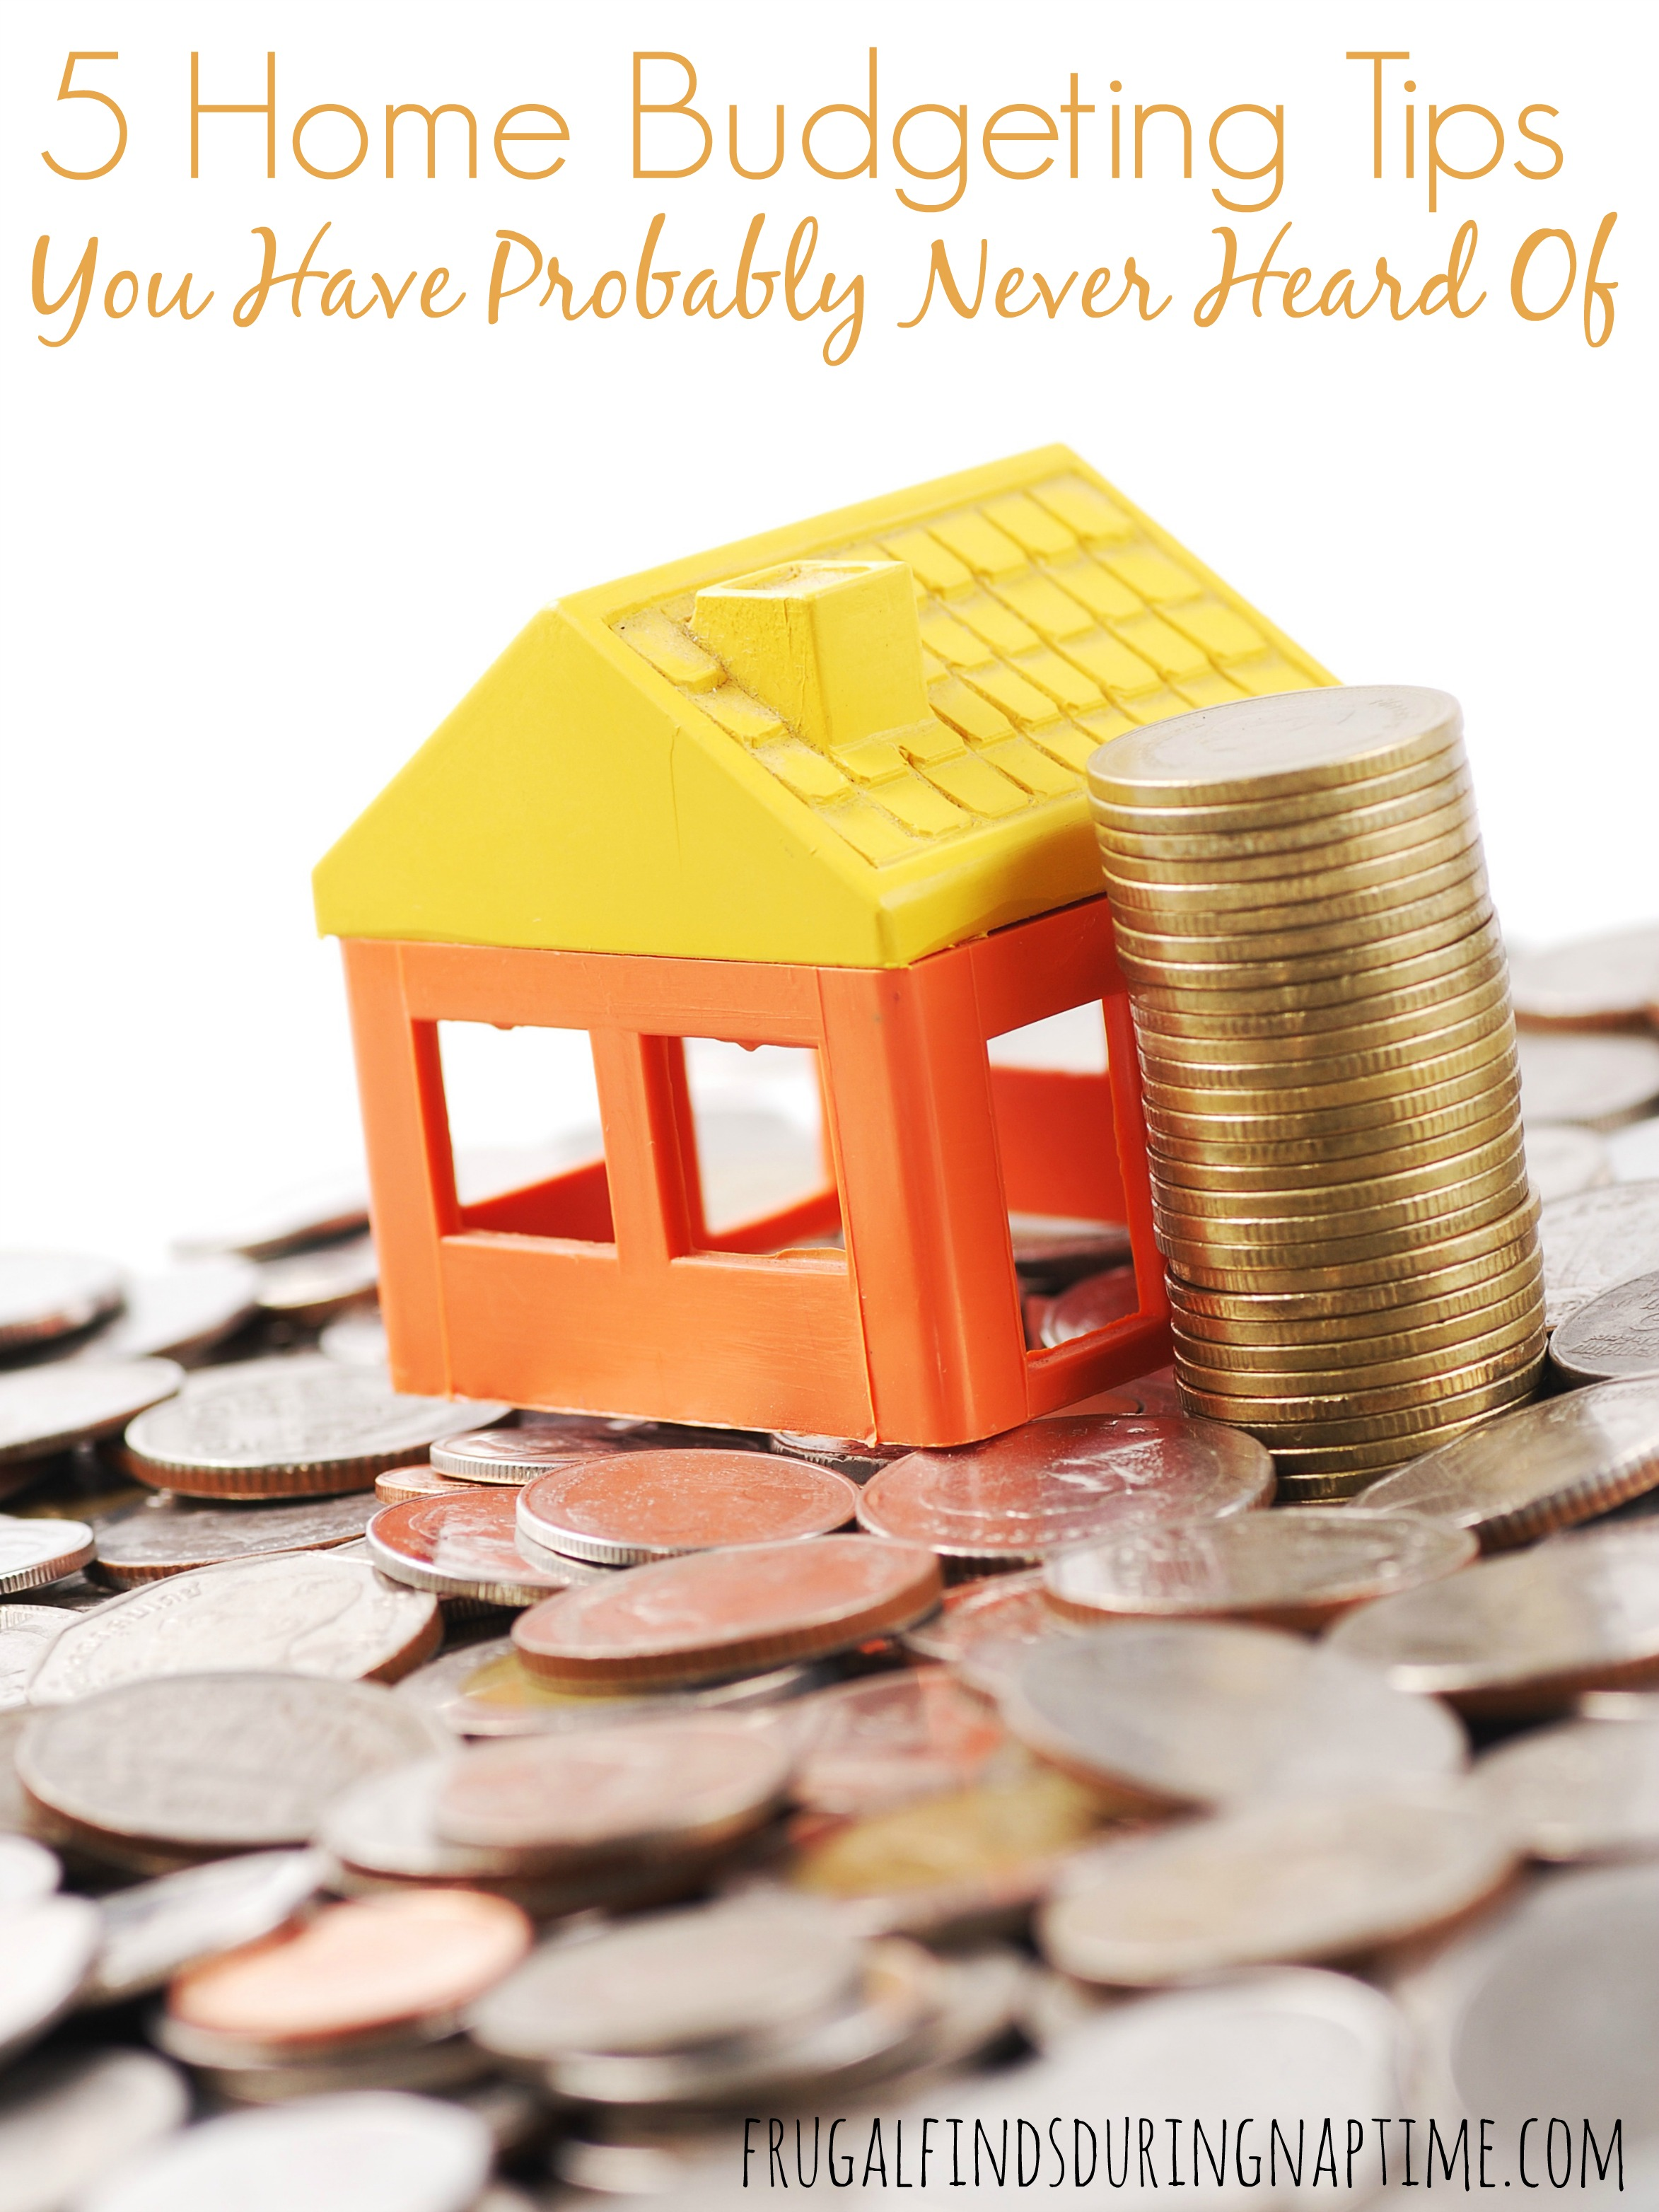 5 Home Budgeting Tips You Have Probably Never Heard Of